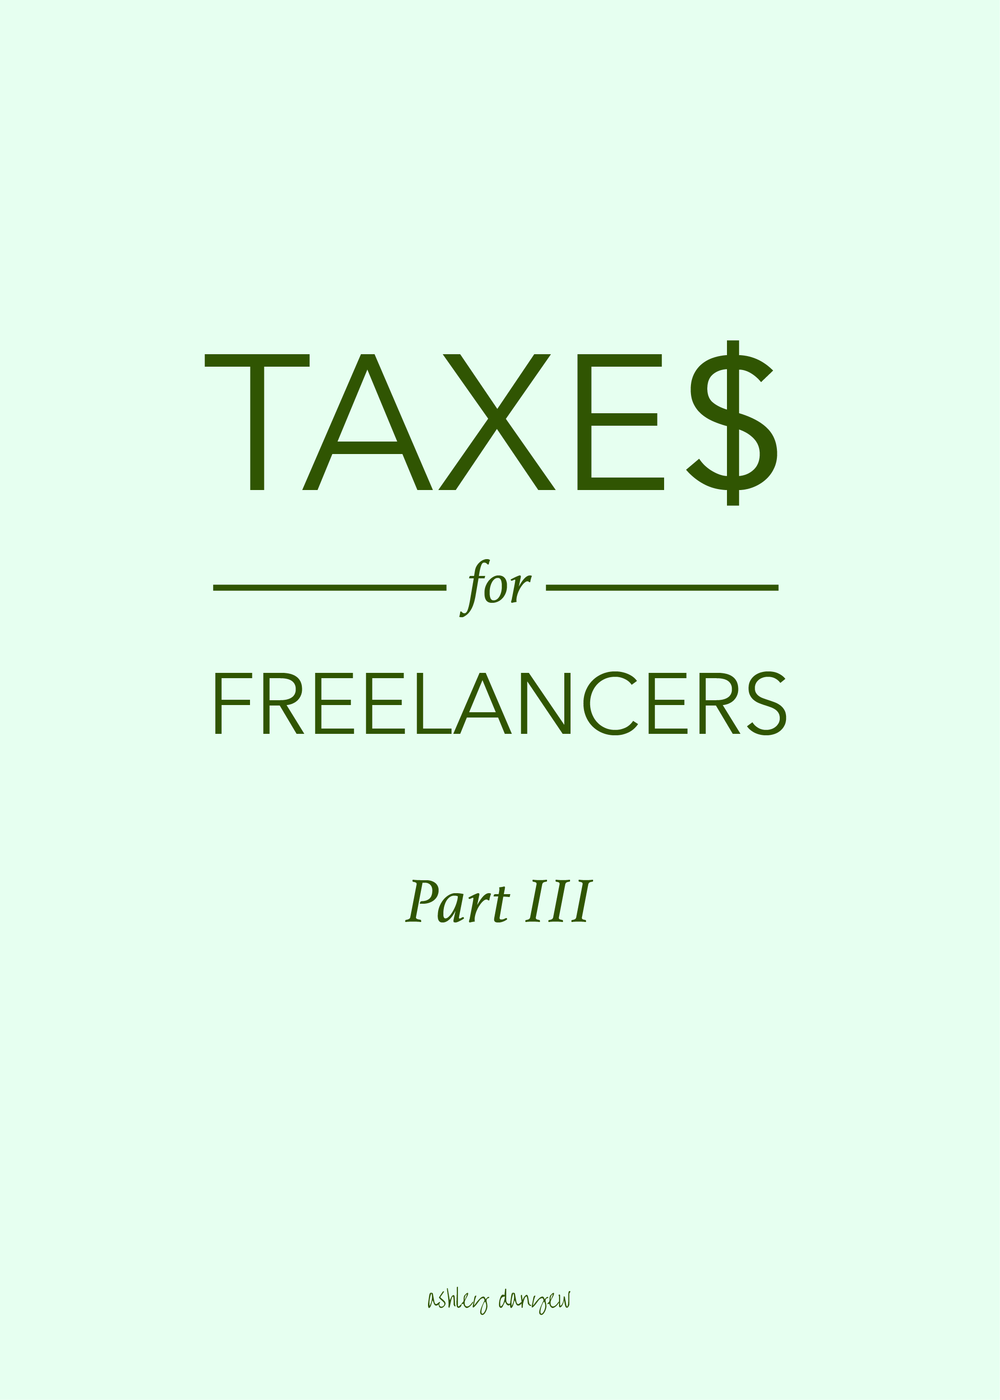 Taxes for Freelancers_III.png